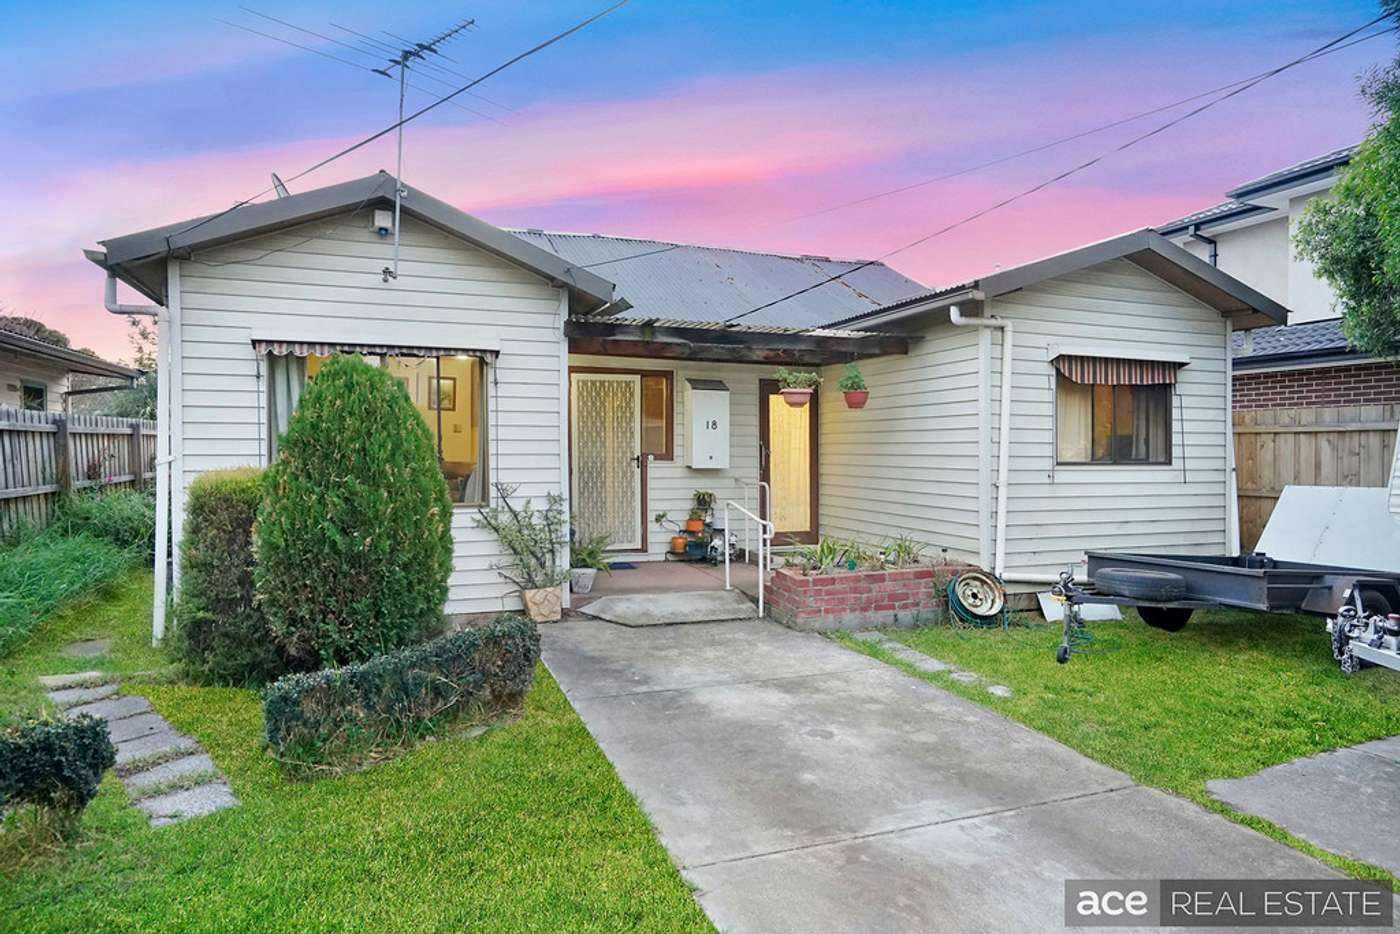 Main view of Homely house listing, 18 Grace Street, Laverton VIC 3028